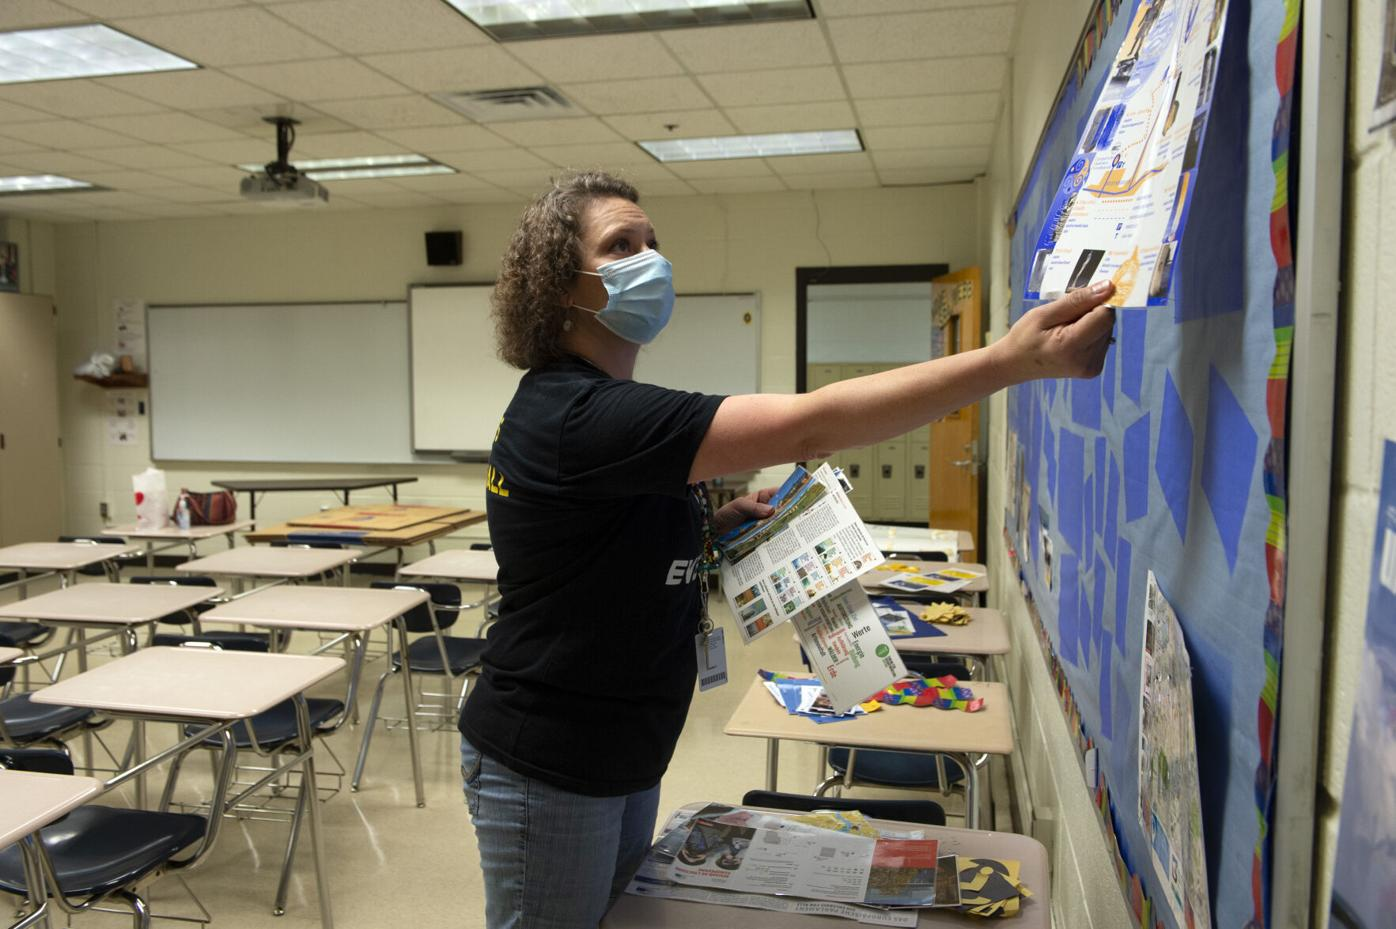 Teachers resign over lack of Covid-19 protections